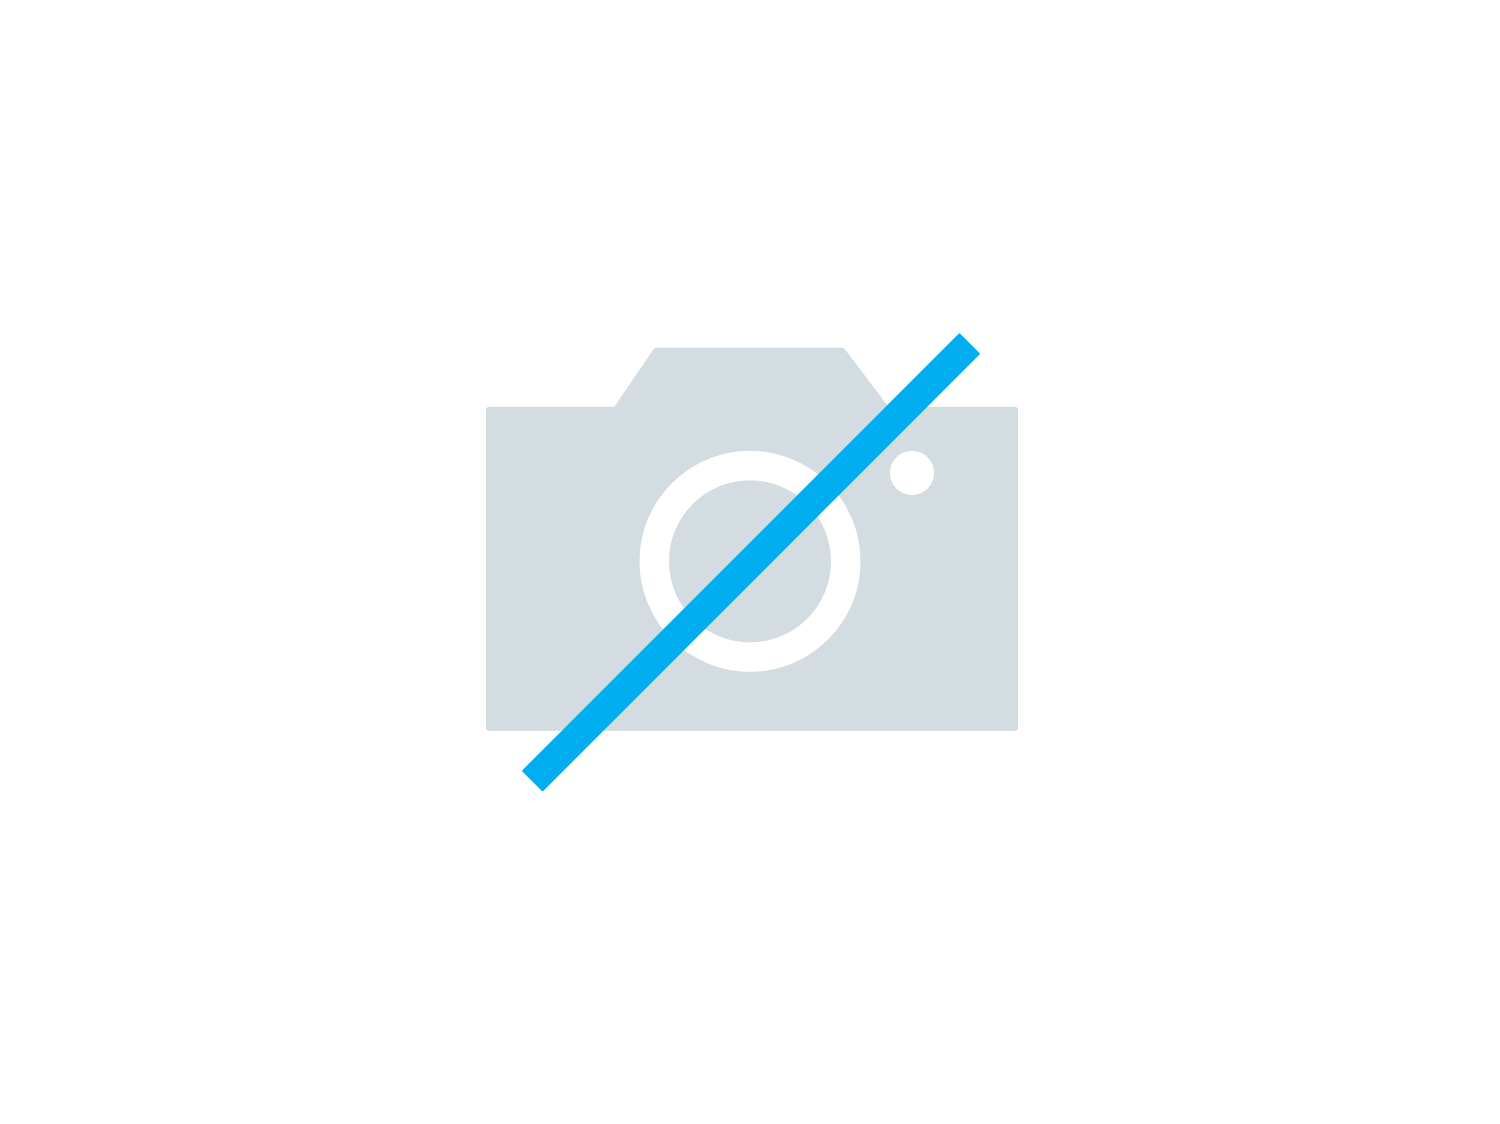 Badmat Traumbad 60x60cm pepplestone